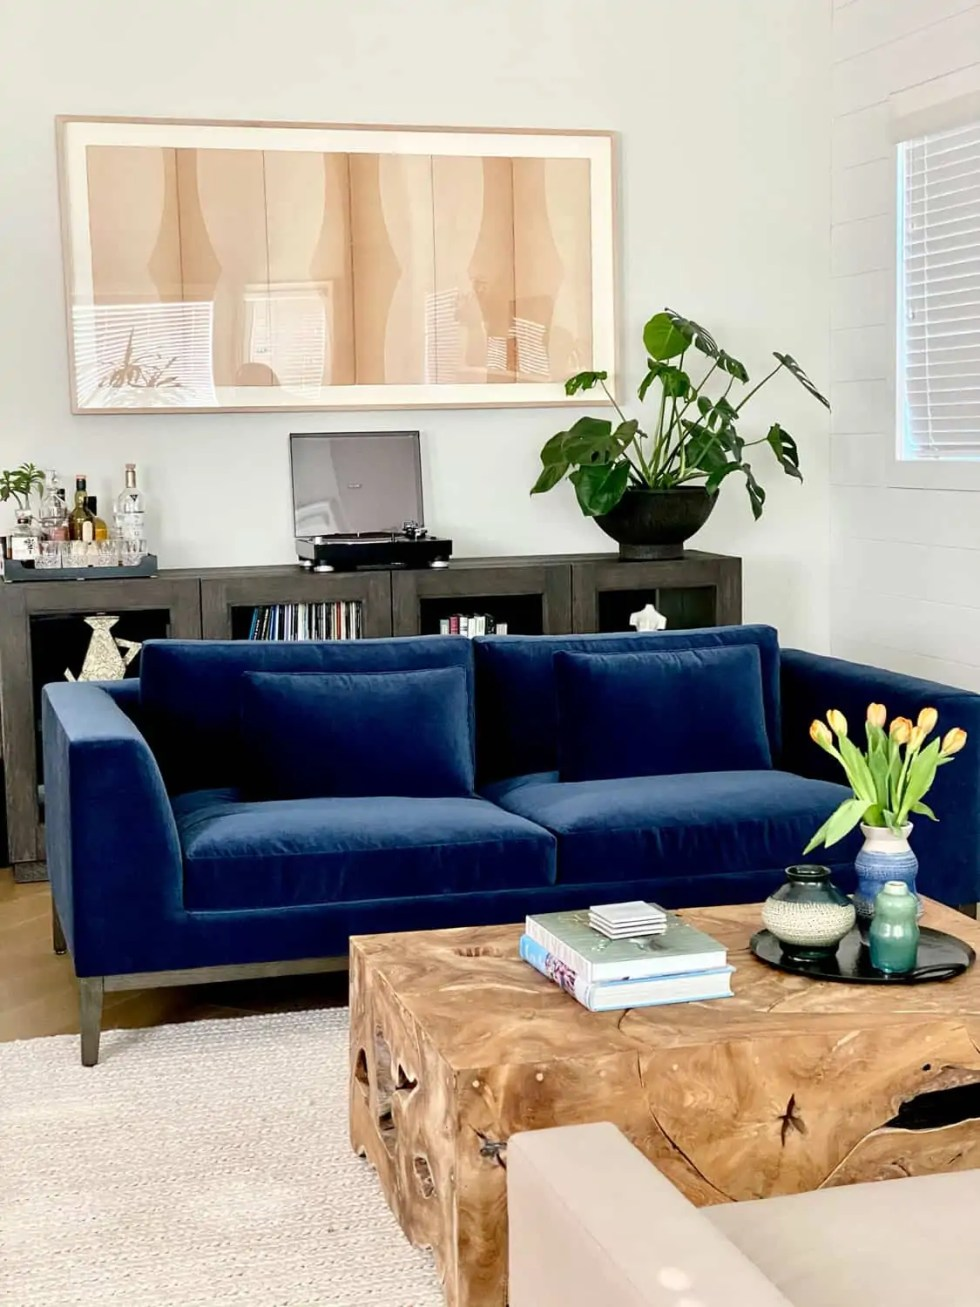 Mary Ann Pickett Designs this Modern Traditional Living Room